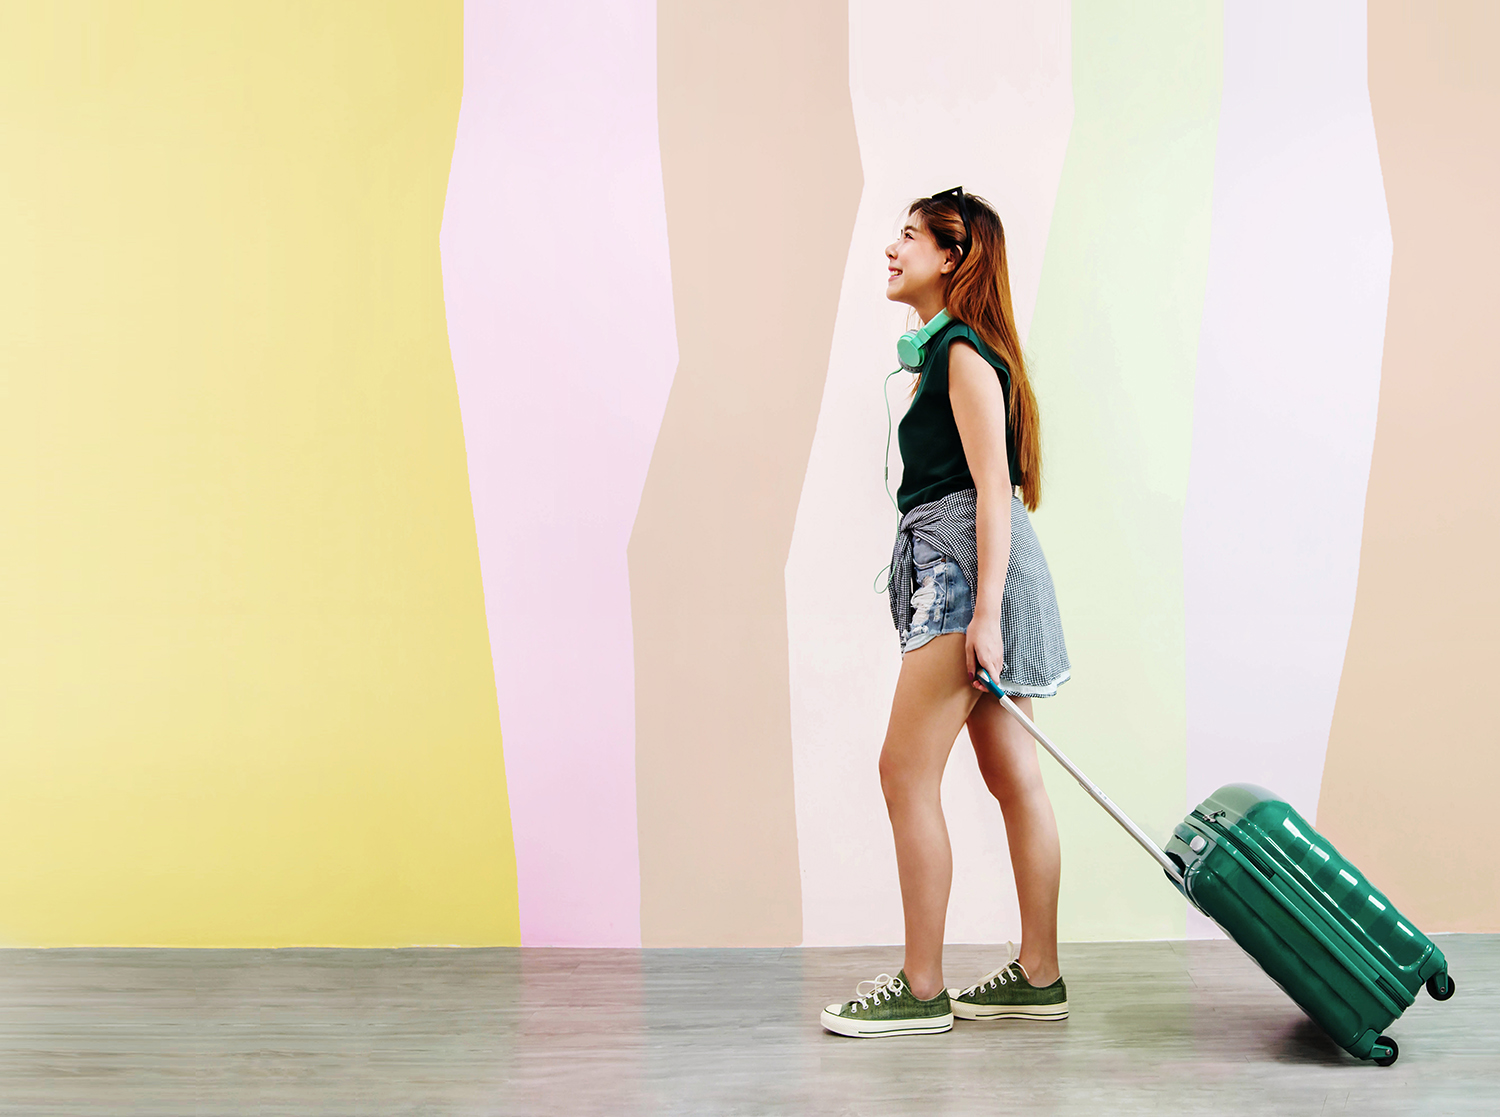 Woman By Rainbow Wall With Suitcase